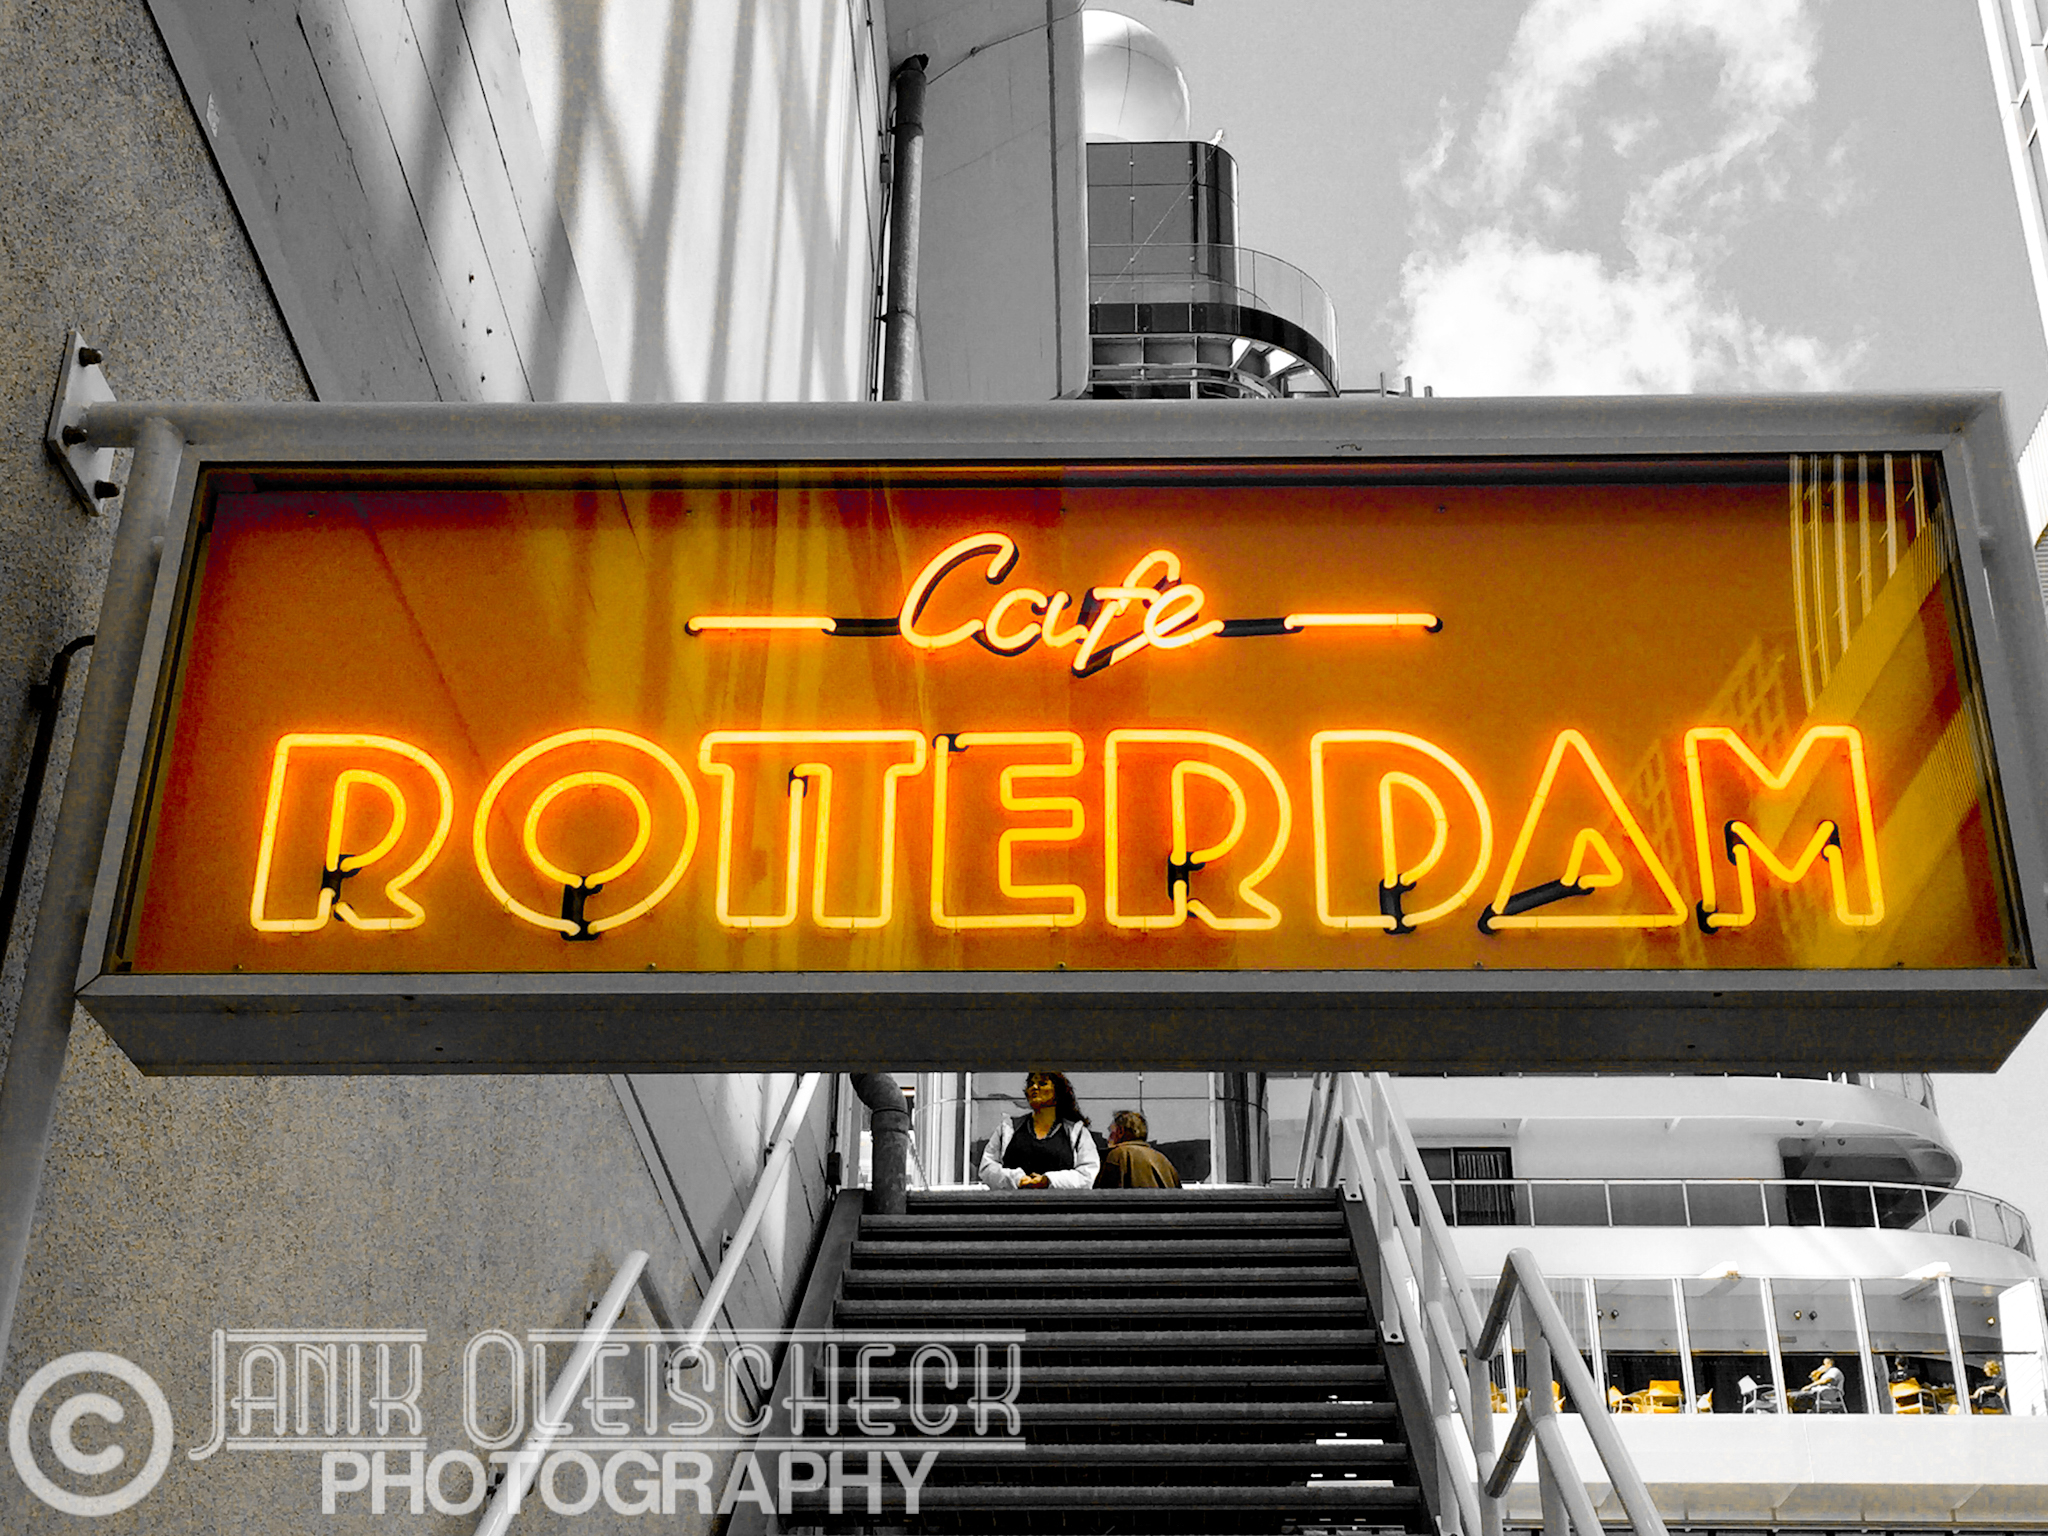 Coffeehouse sign in Rotterdam, Netherlands